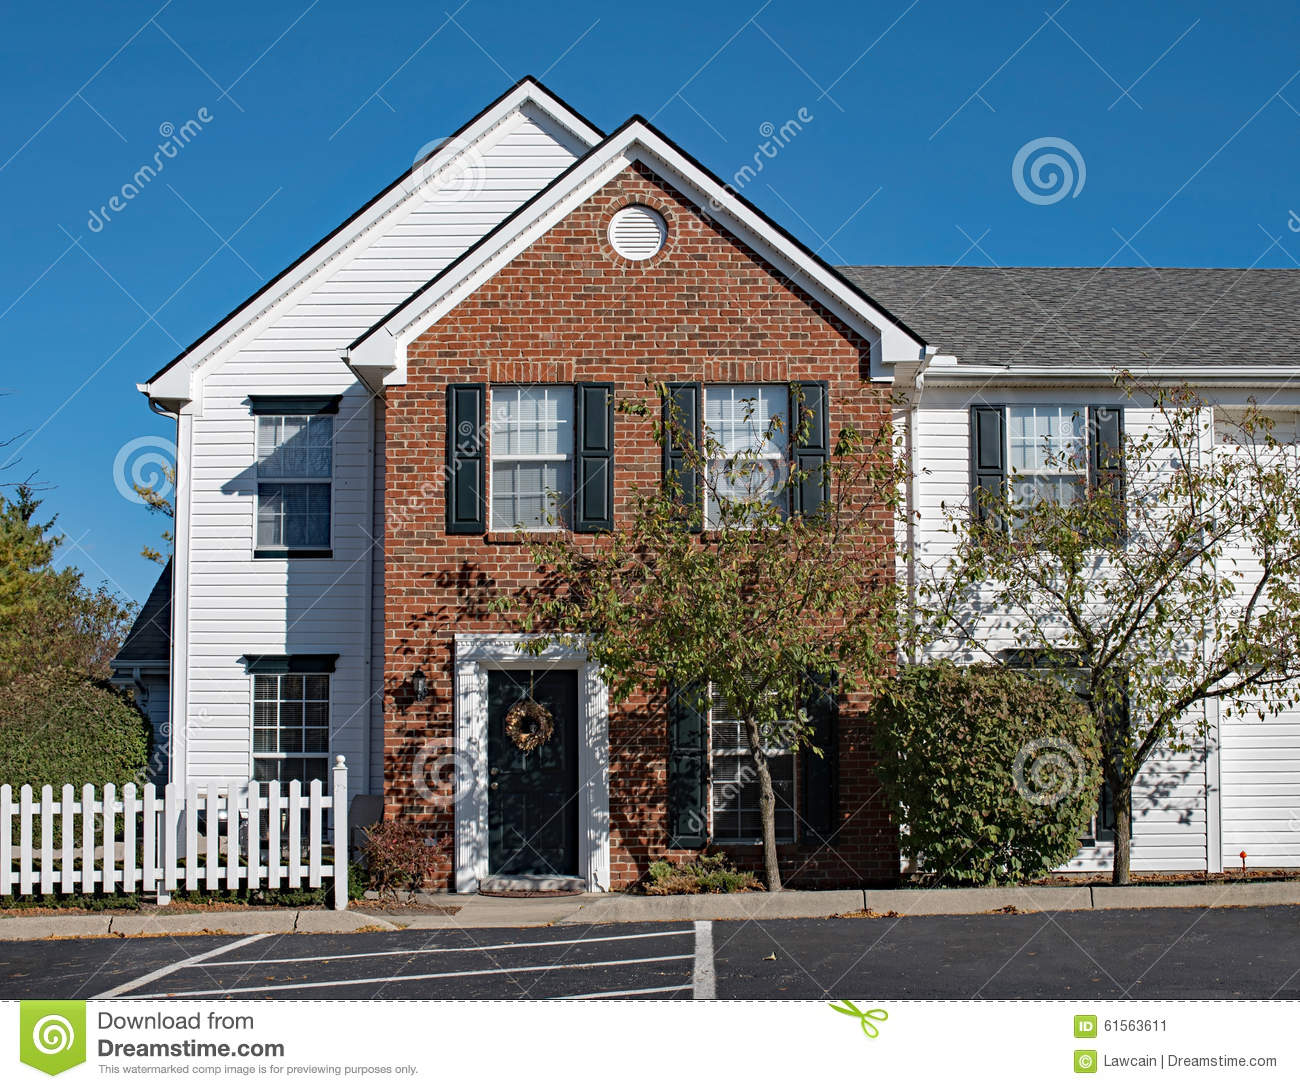 Townhouse Apartments: Apartments Living With White Picket Fence Stock Photo